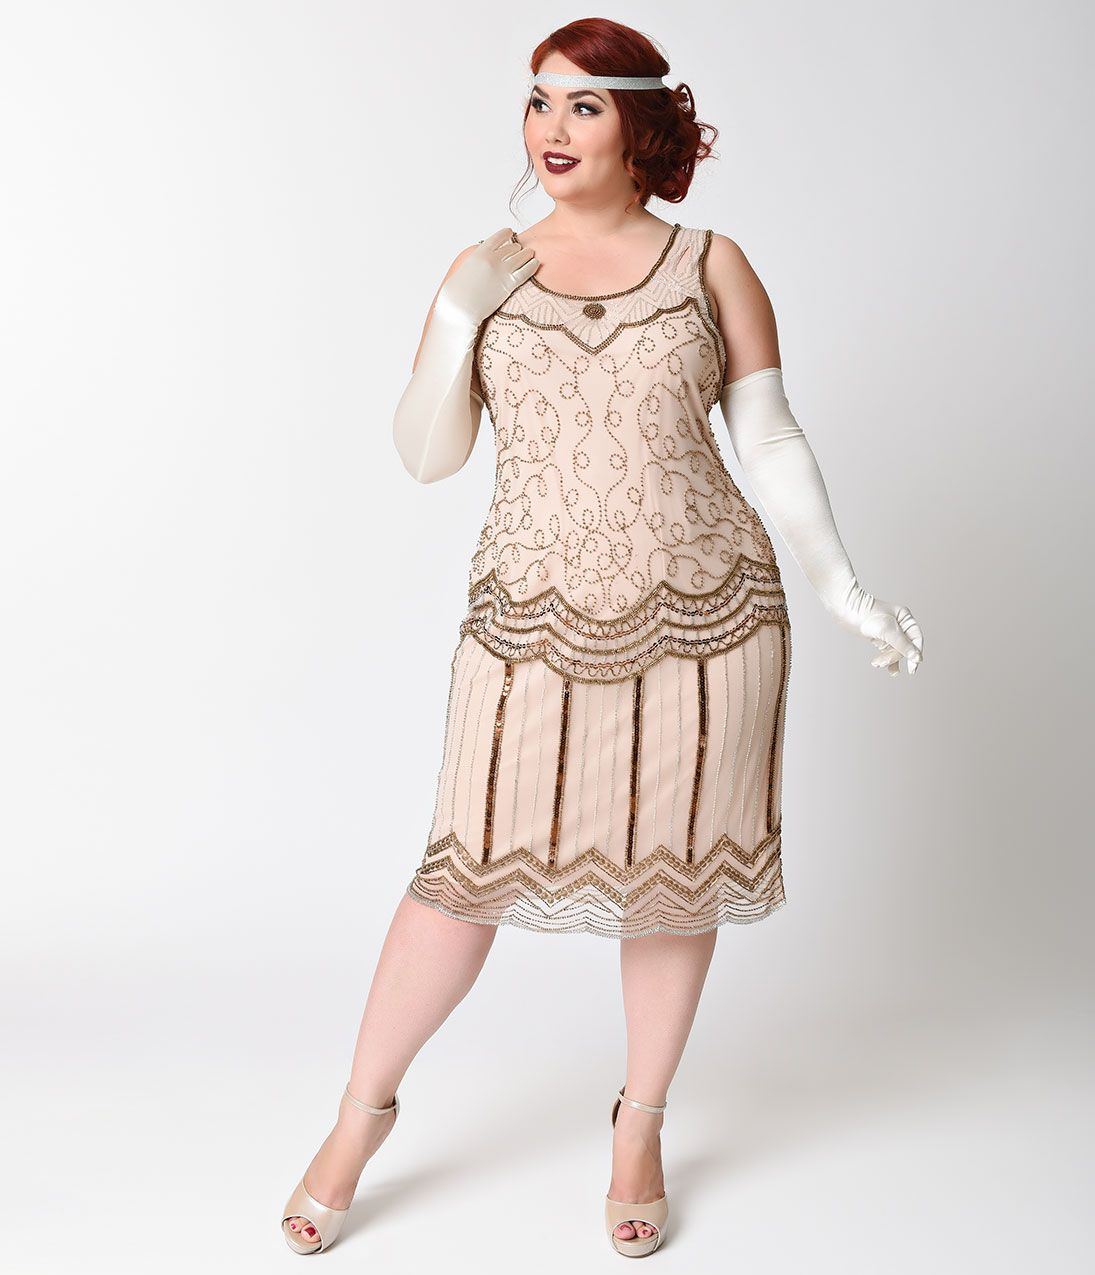 Where to Buy Flapper Dress